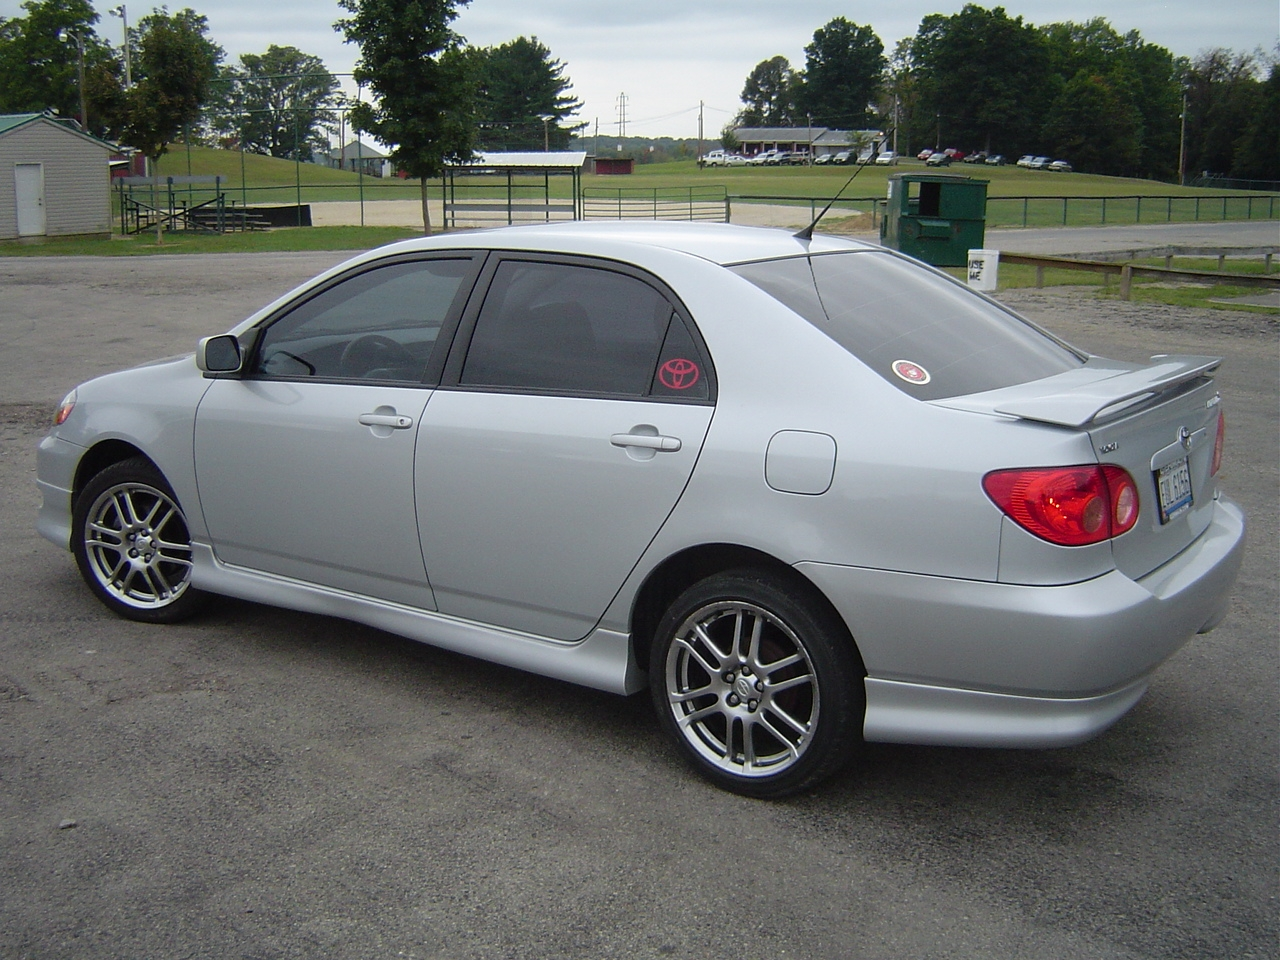 hight resolution of another mawalser 2007 toyota corolla post 13331571